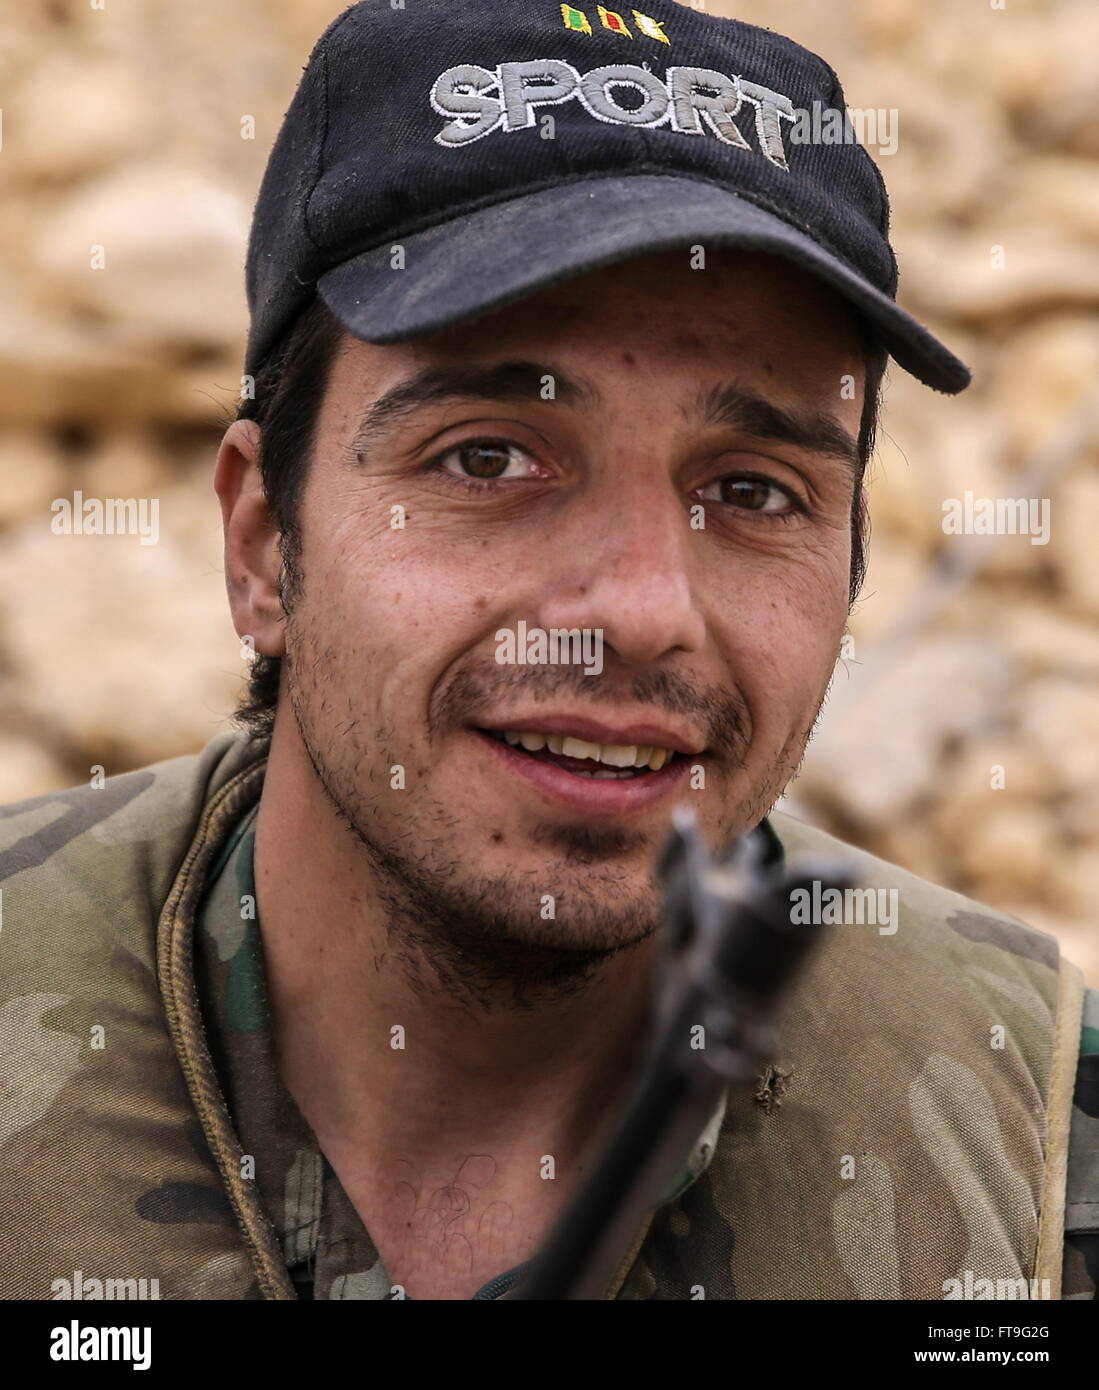 Palmyra, Syria. 26th Mar, 2016. A soldier of the Syrian government army at the Fahkr ad-Din al-Maani castle in Palmyra, Stock Photo